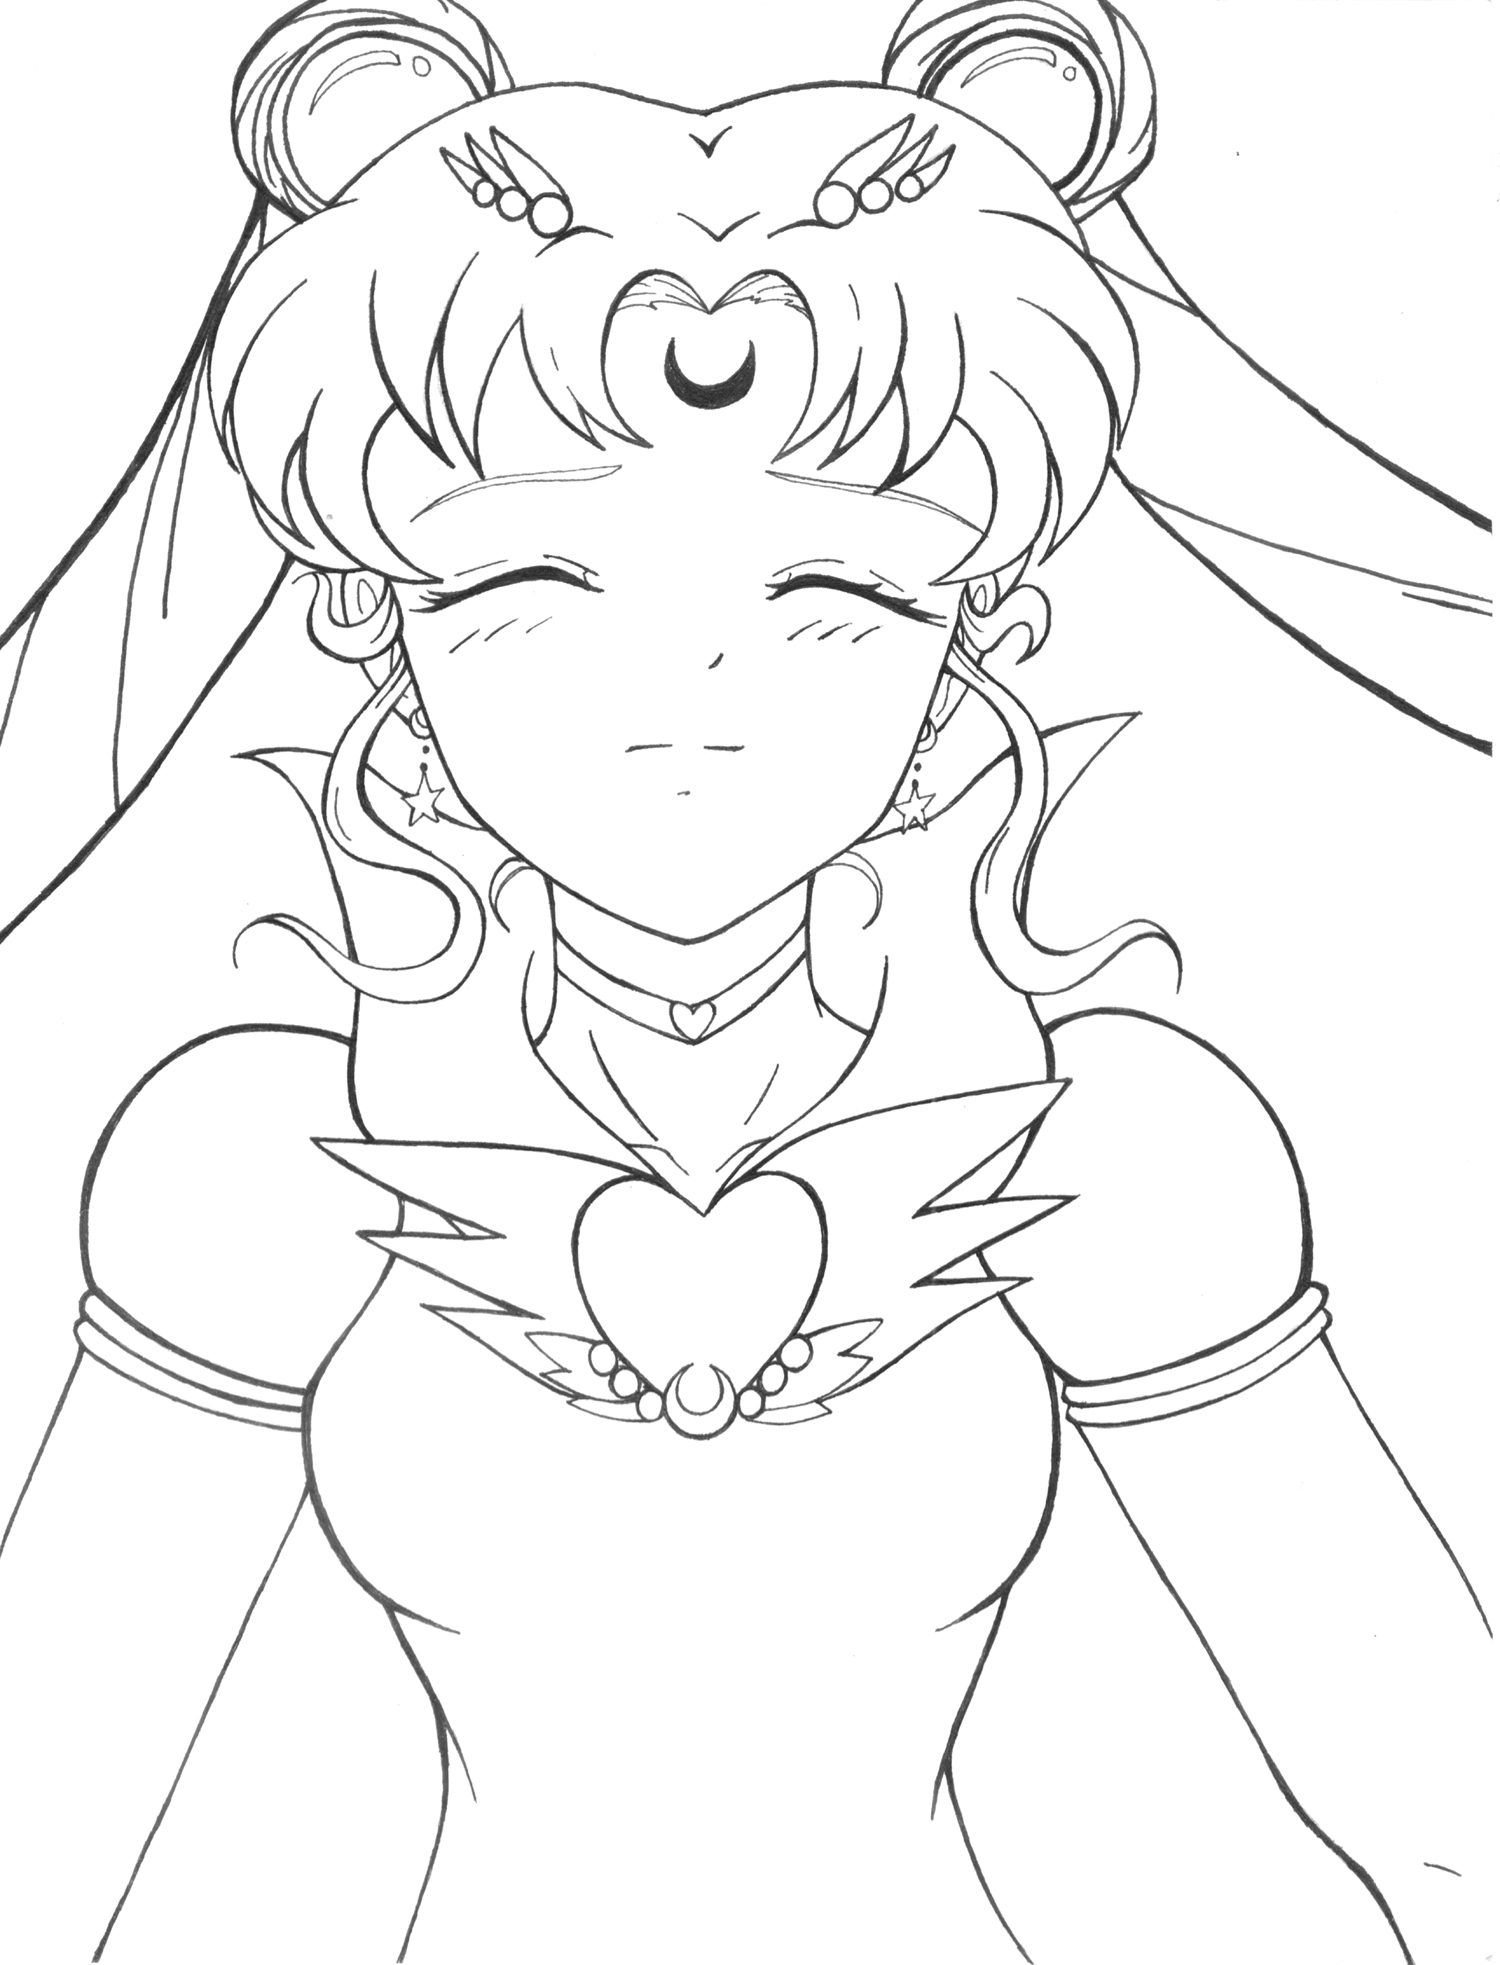 mars coloring pages - Sailor Moon